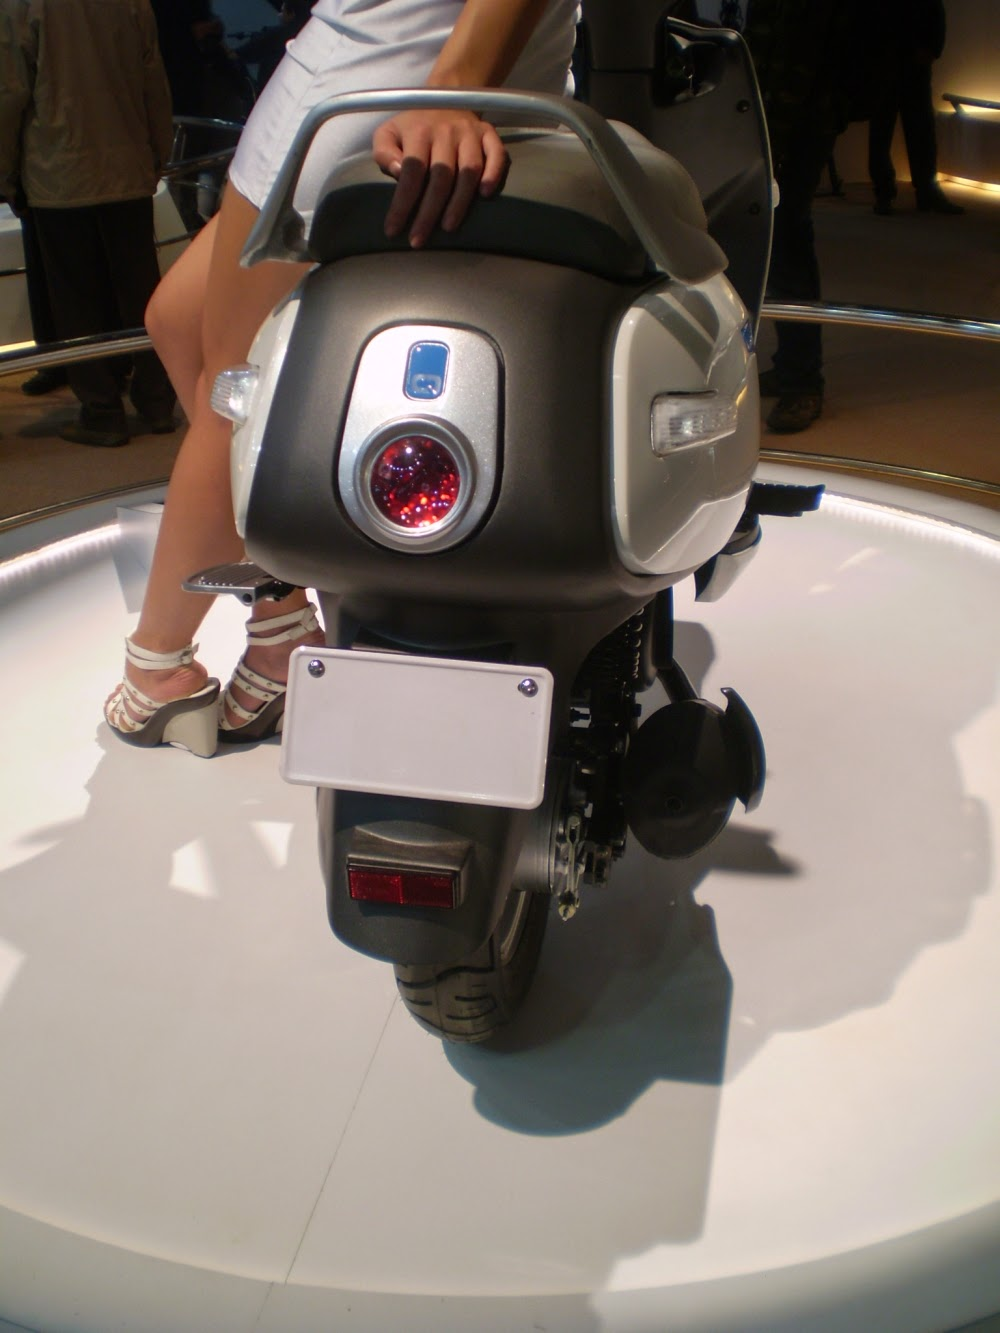 Tvs upcoming hybrid scooter tvs qube specs reviews images launch date